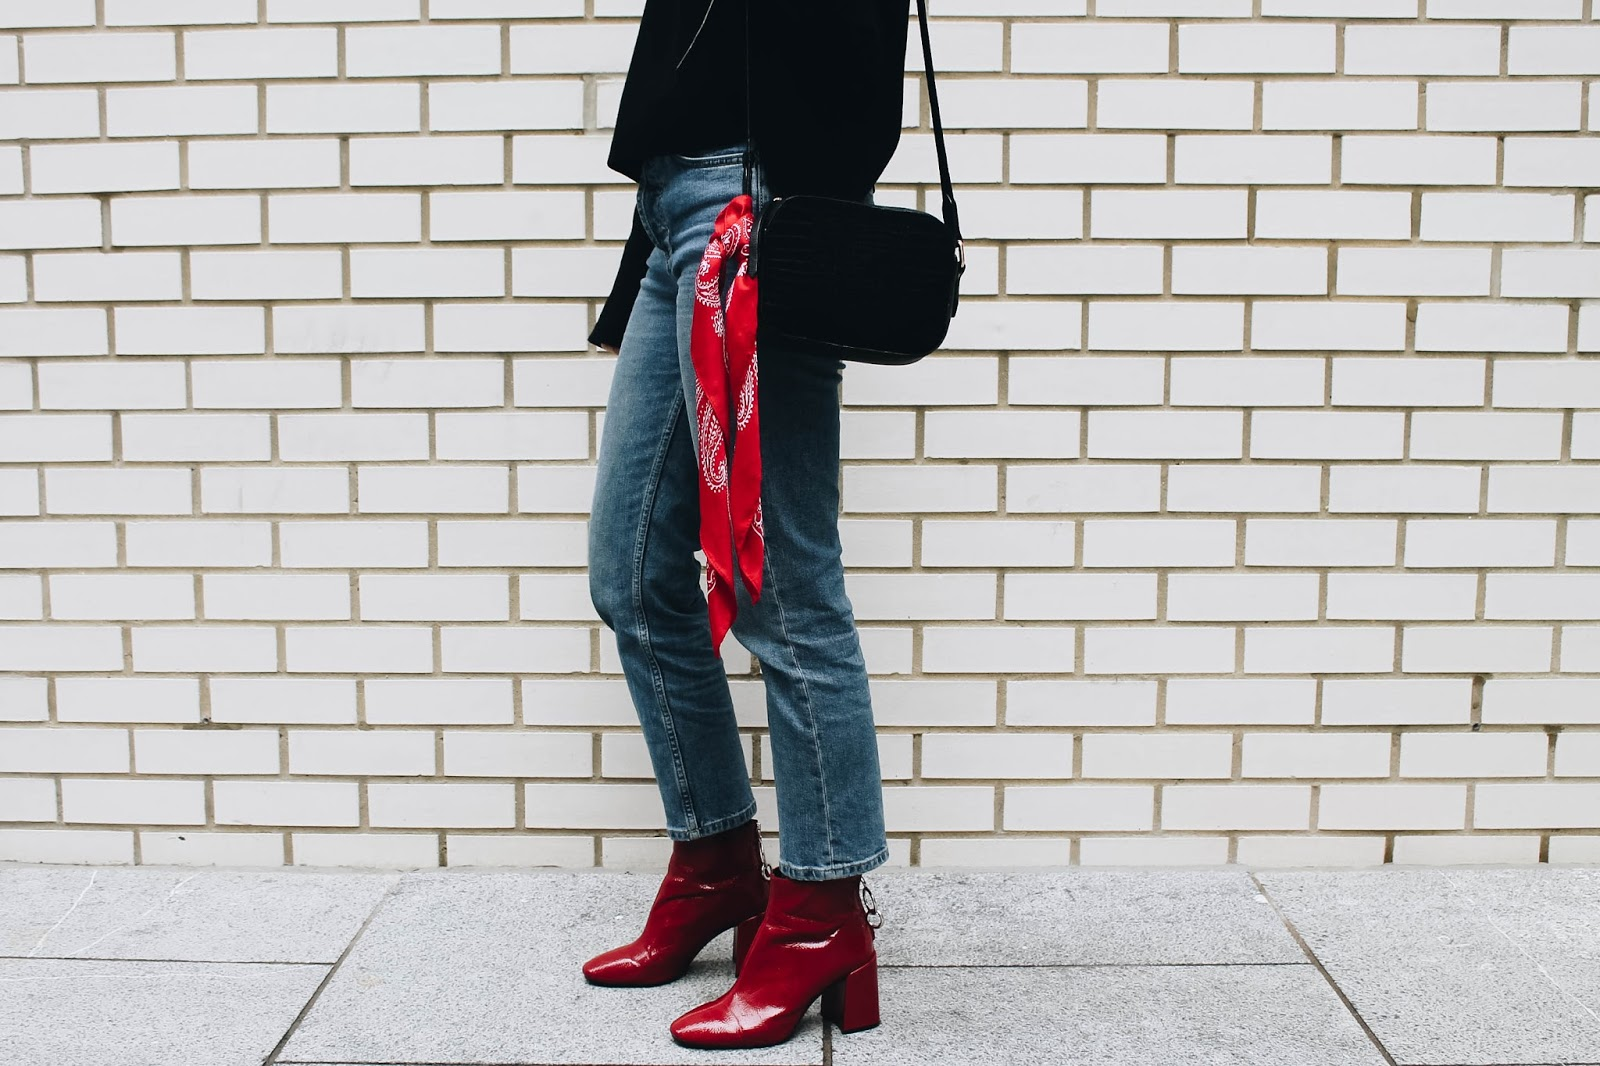 fashion blogger, london blogger, microinfluencer, bandana scarf, leather bag, croc bag, accessorize bag, accessorize leather, denim, red, h&m ruffle top, ruffle sleeves, red boots, red zara boots